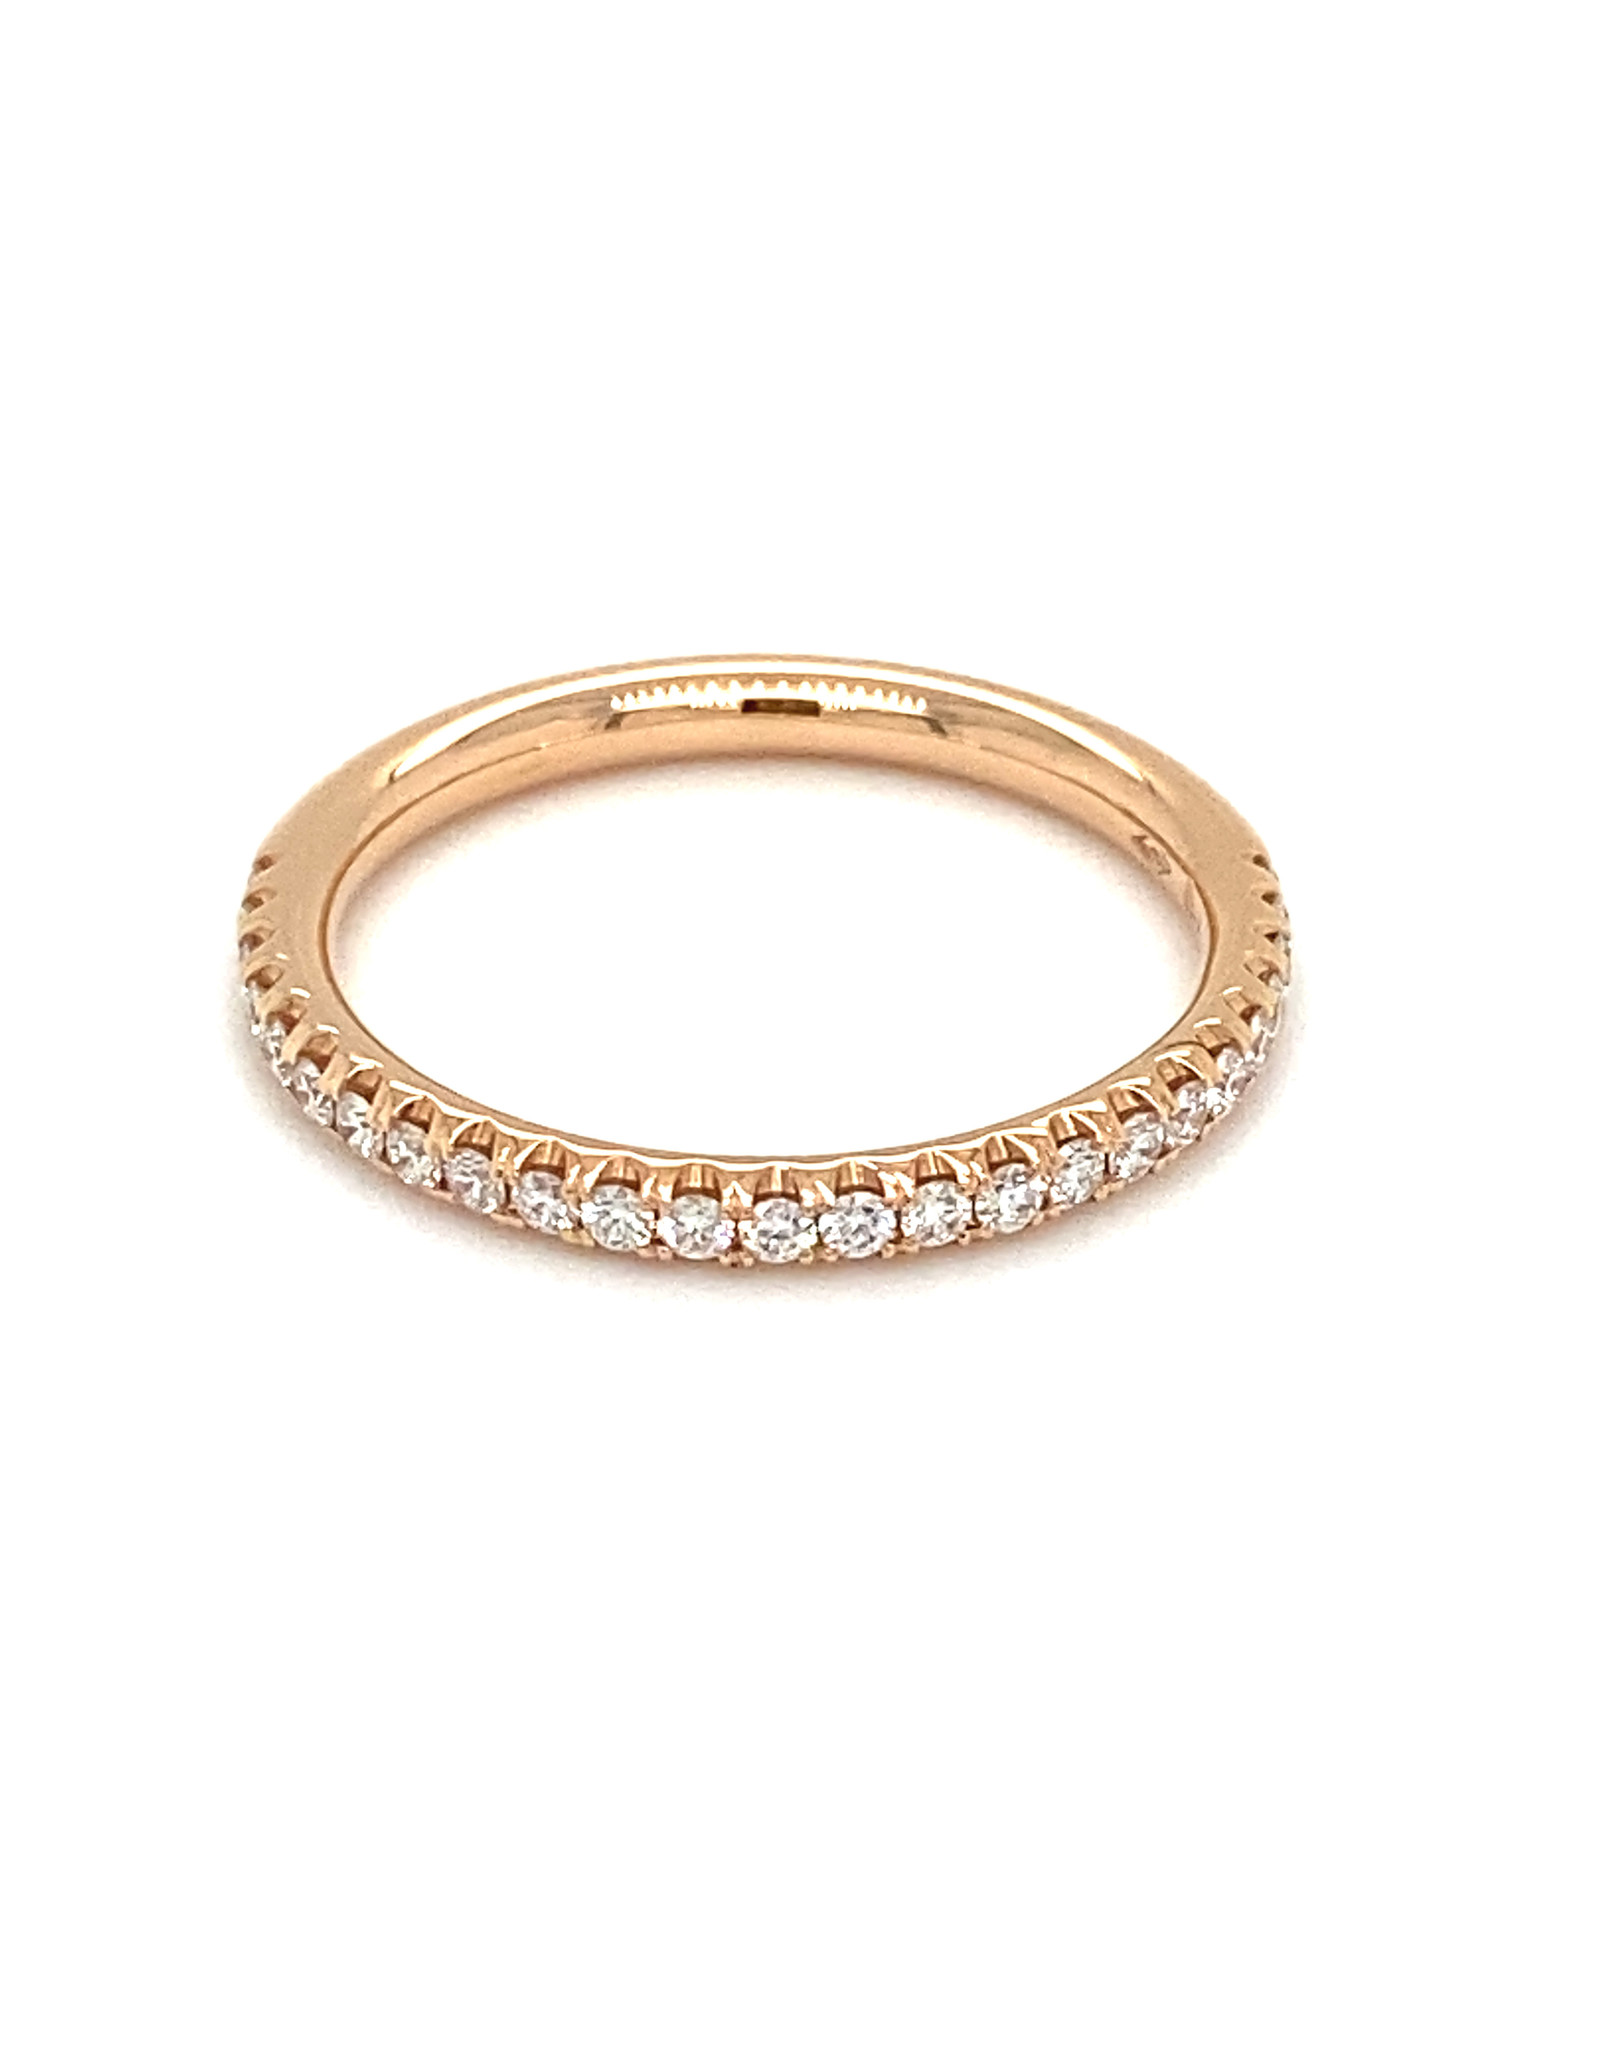 Trouwring rood goud diamant